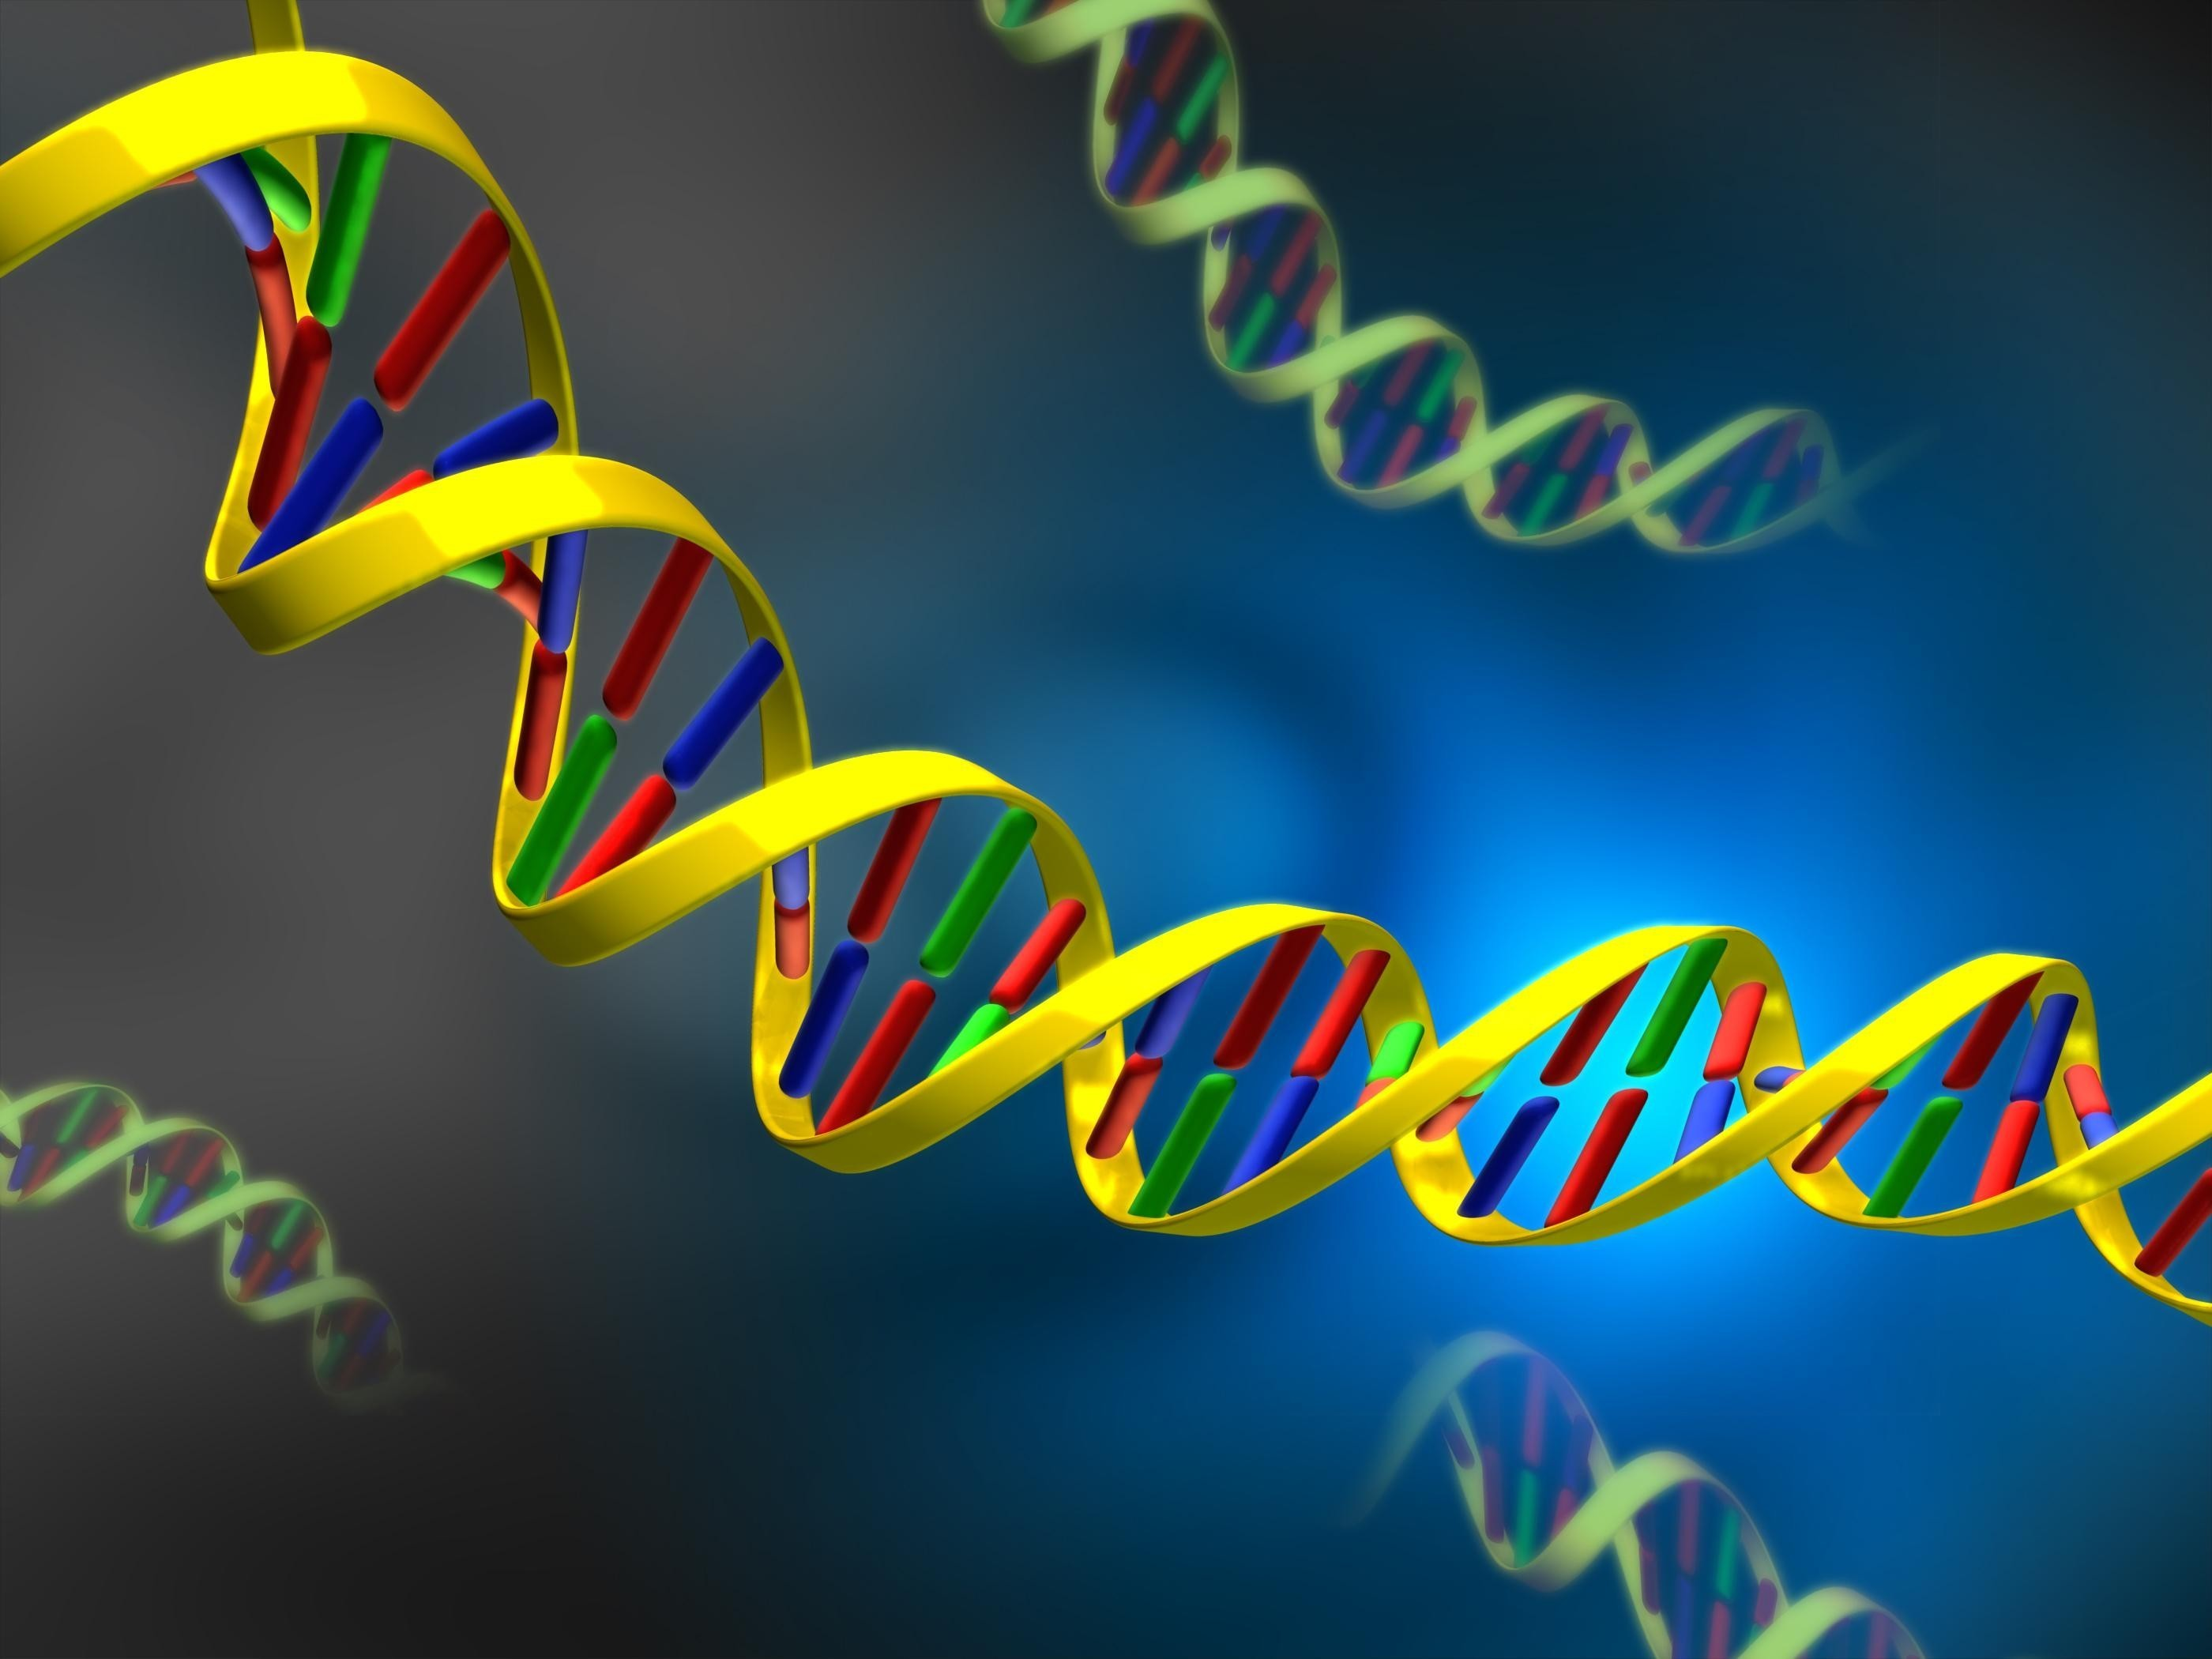 Scientific Dna Wallpapers Wallpapertag